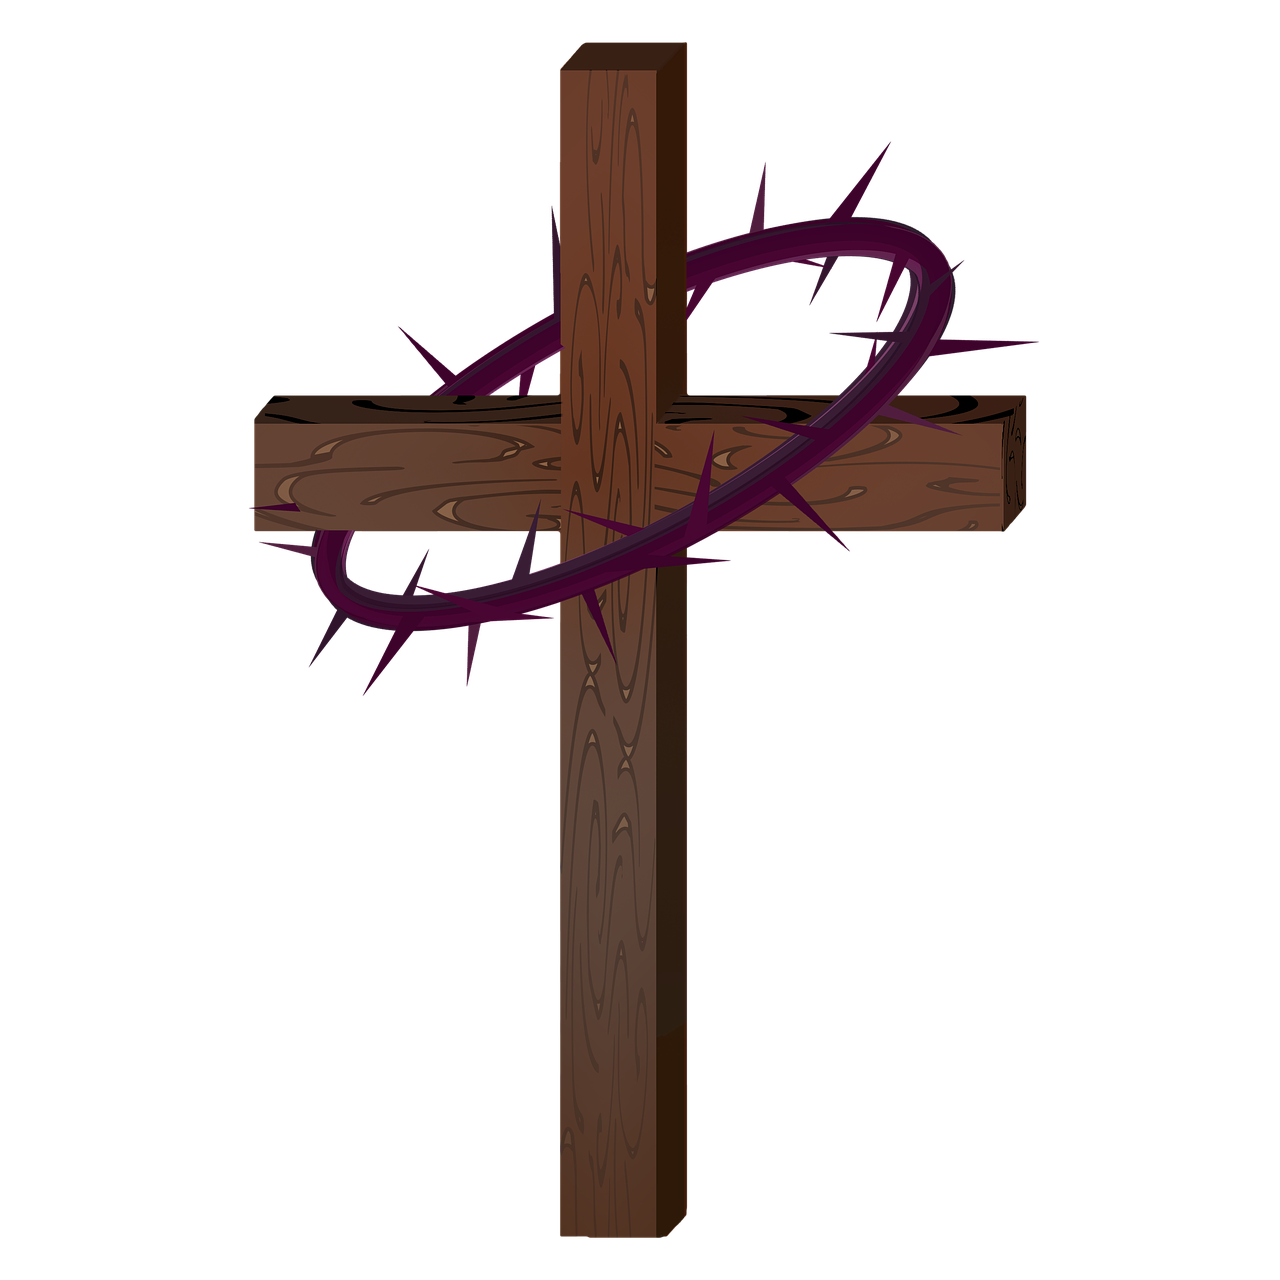 Lent clipart purple easter cross. Crown thorns free photo